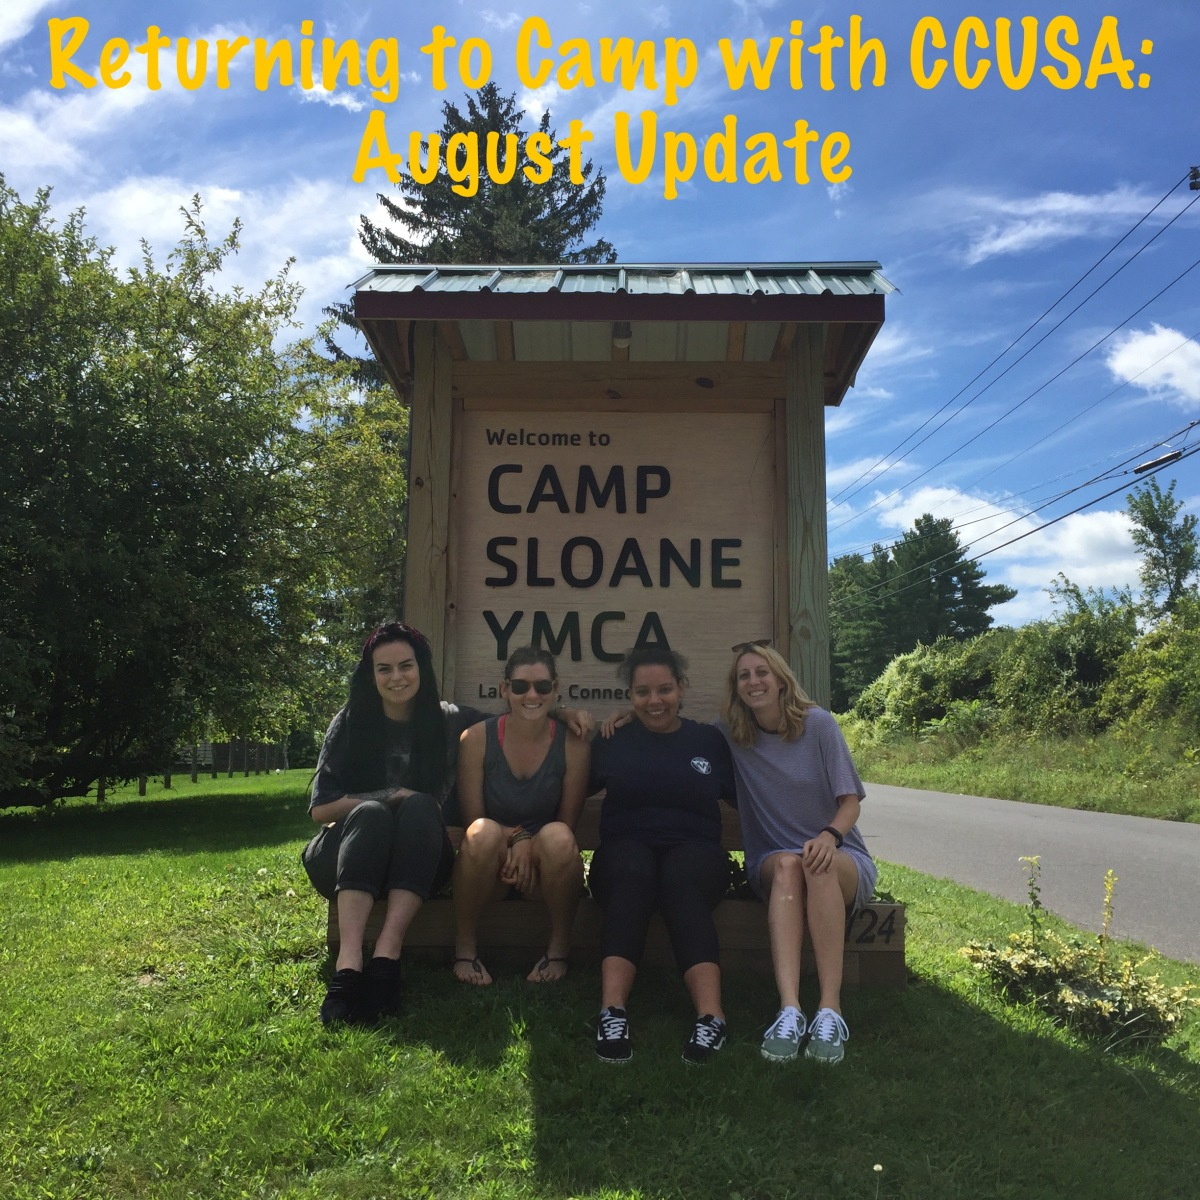 Returning to Camp with CCUSA: August Update